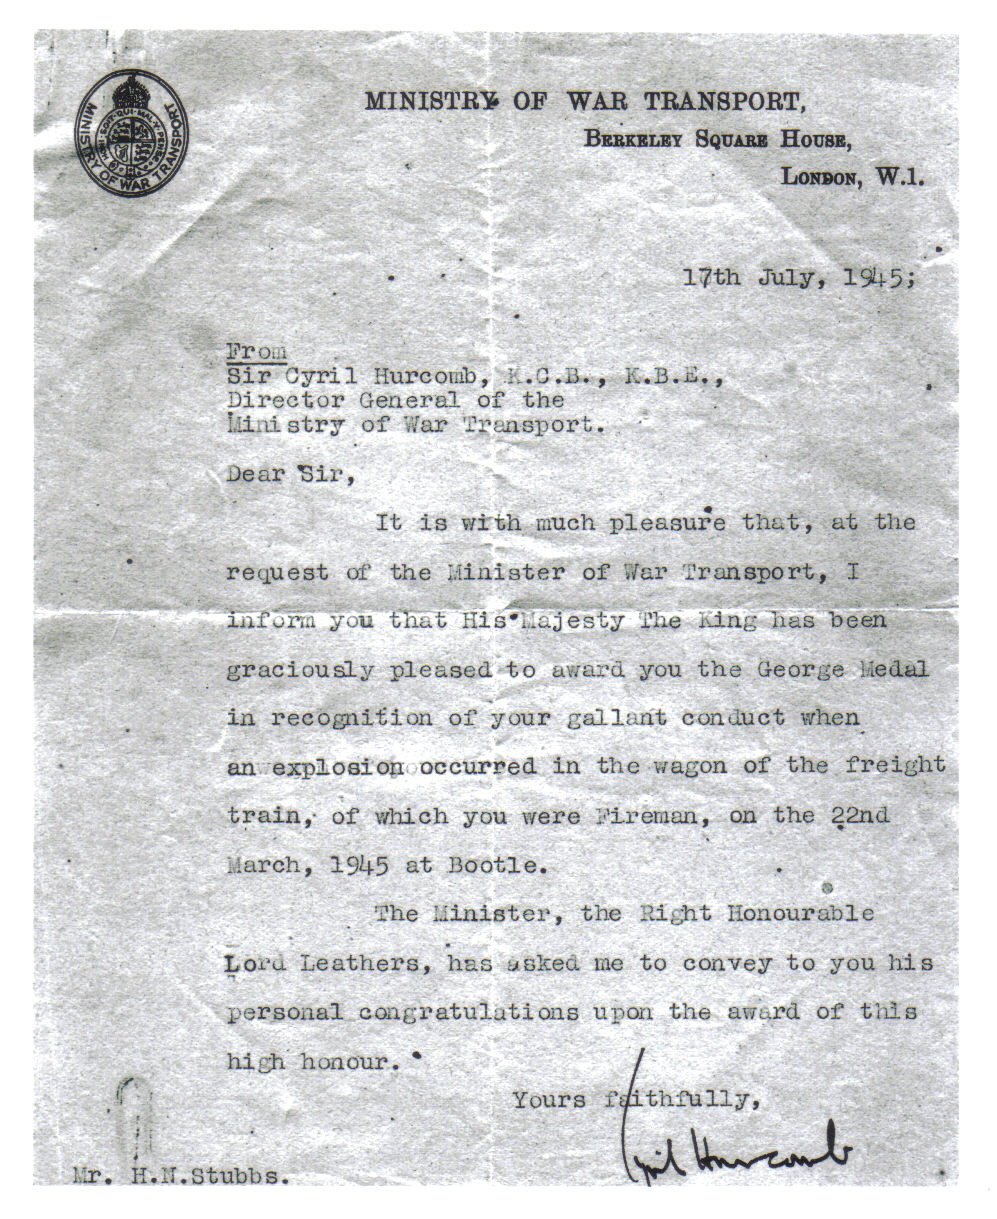 George Medal Letter from Ministry of Transport 1945